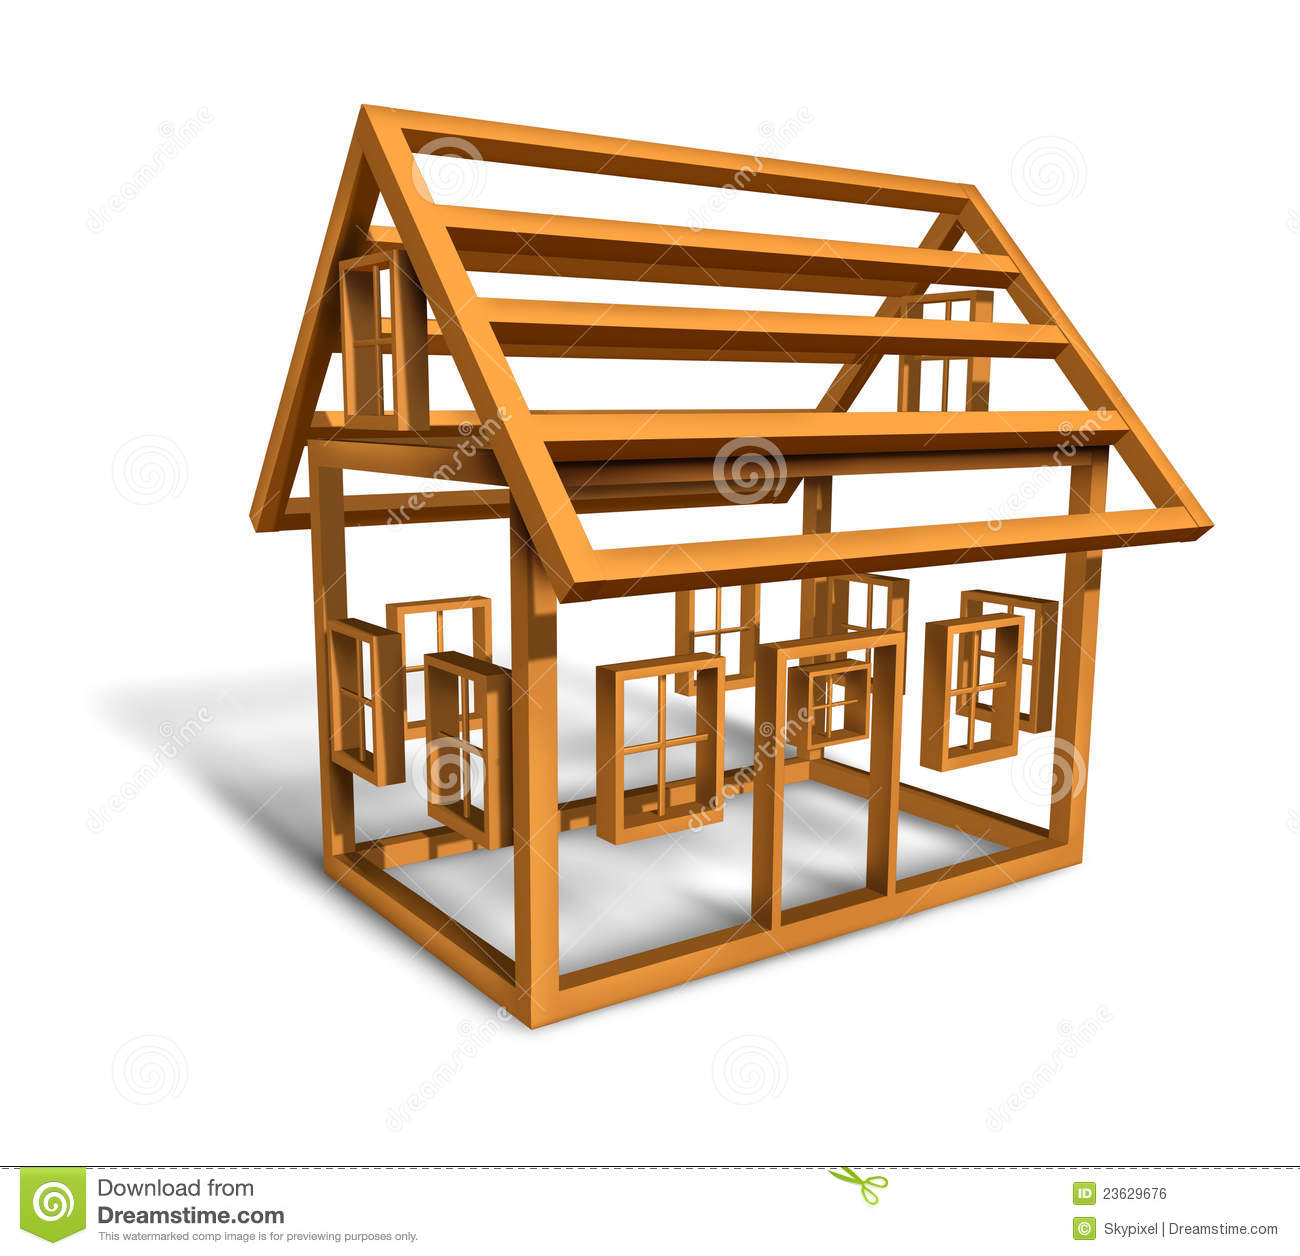 Structure clip art clipart panda free clipart images for Free home builder